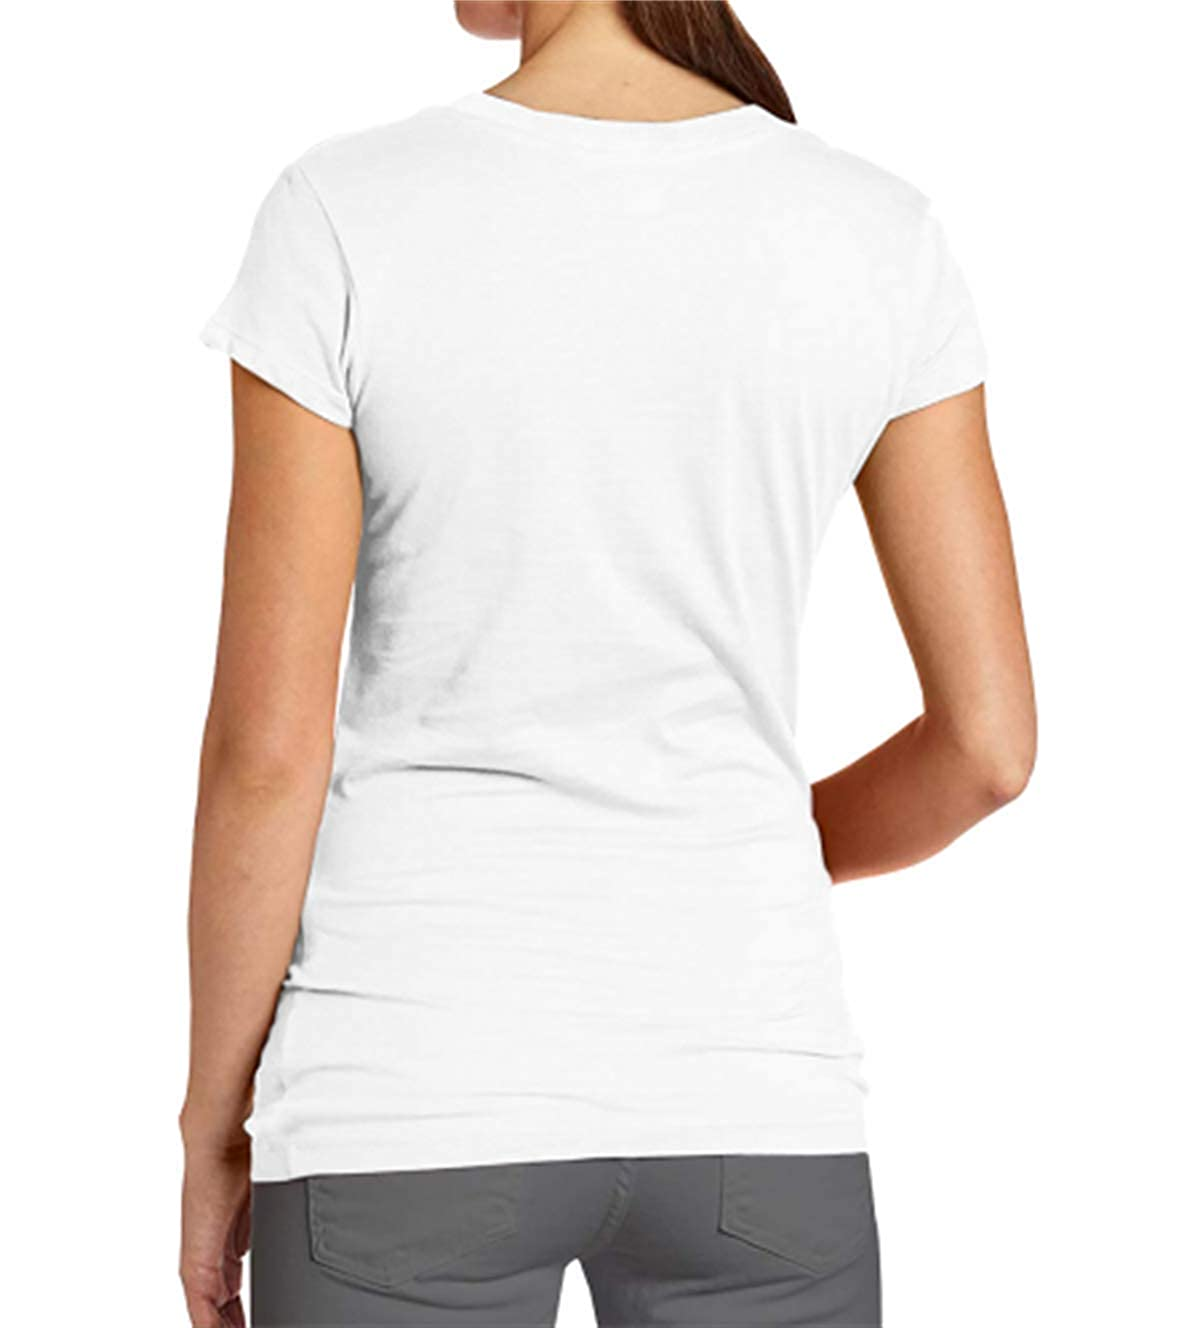 HIPGCC Womens Comfortable T-Shirt Print with Roseanne Chicken White Short Sleeve